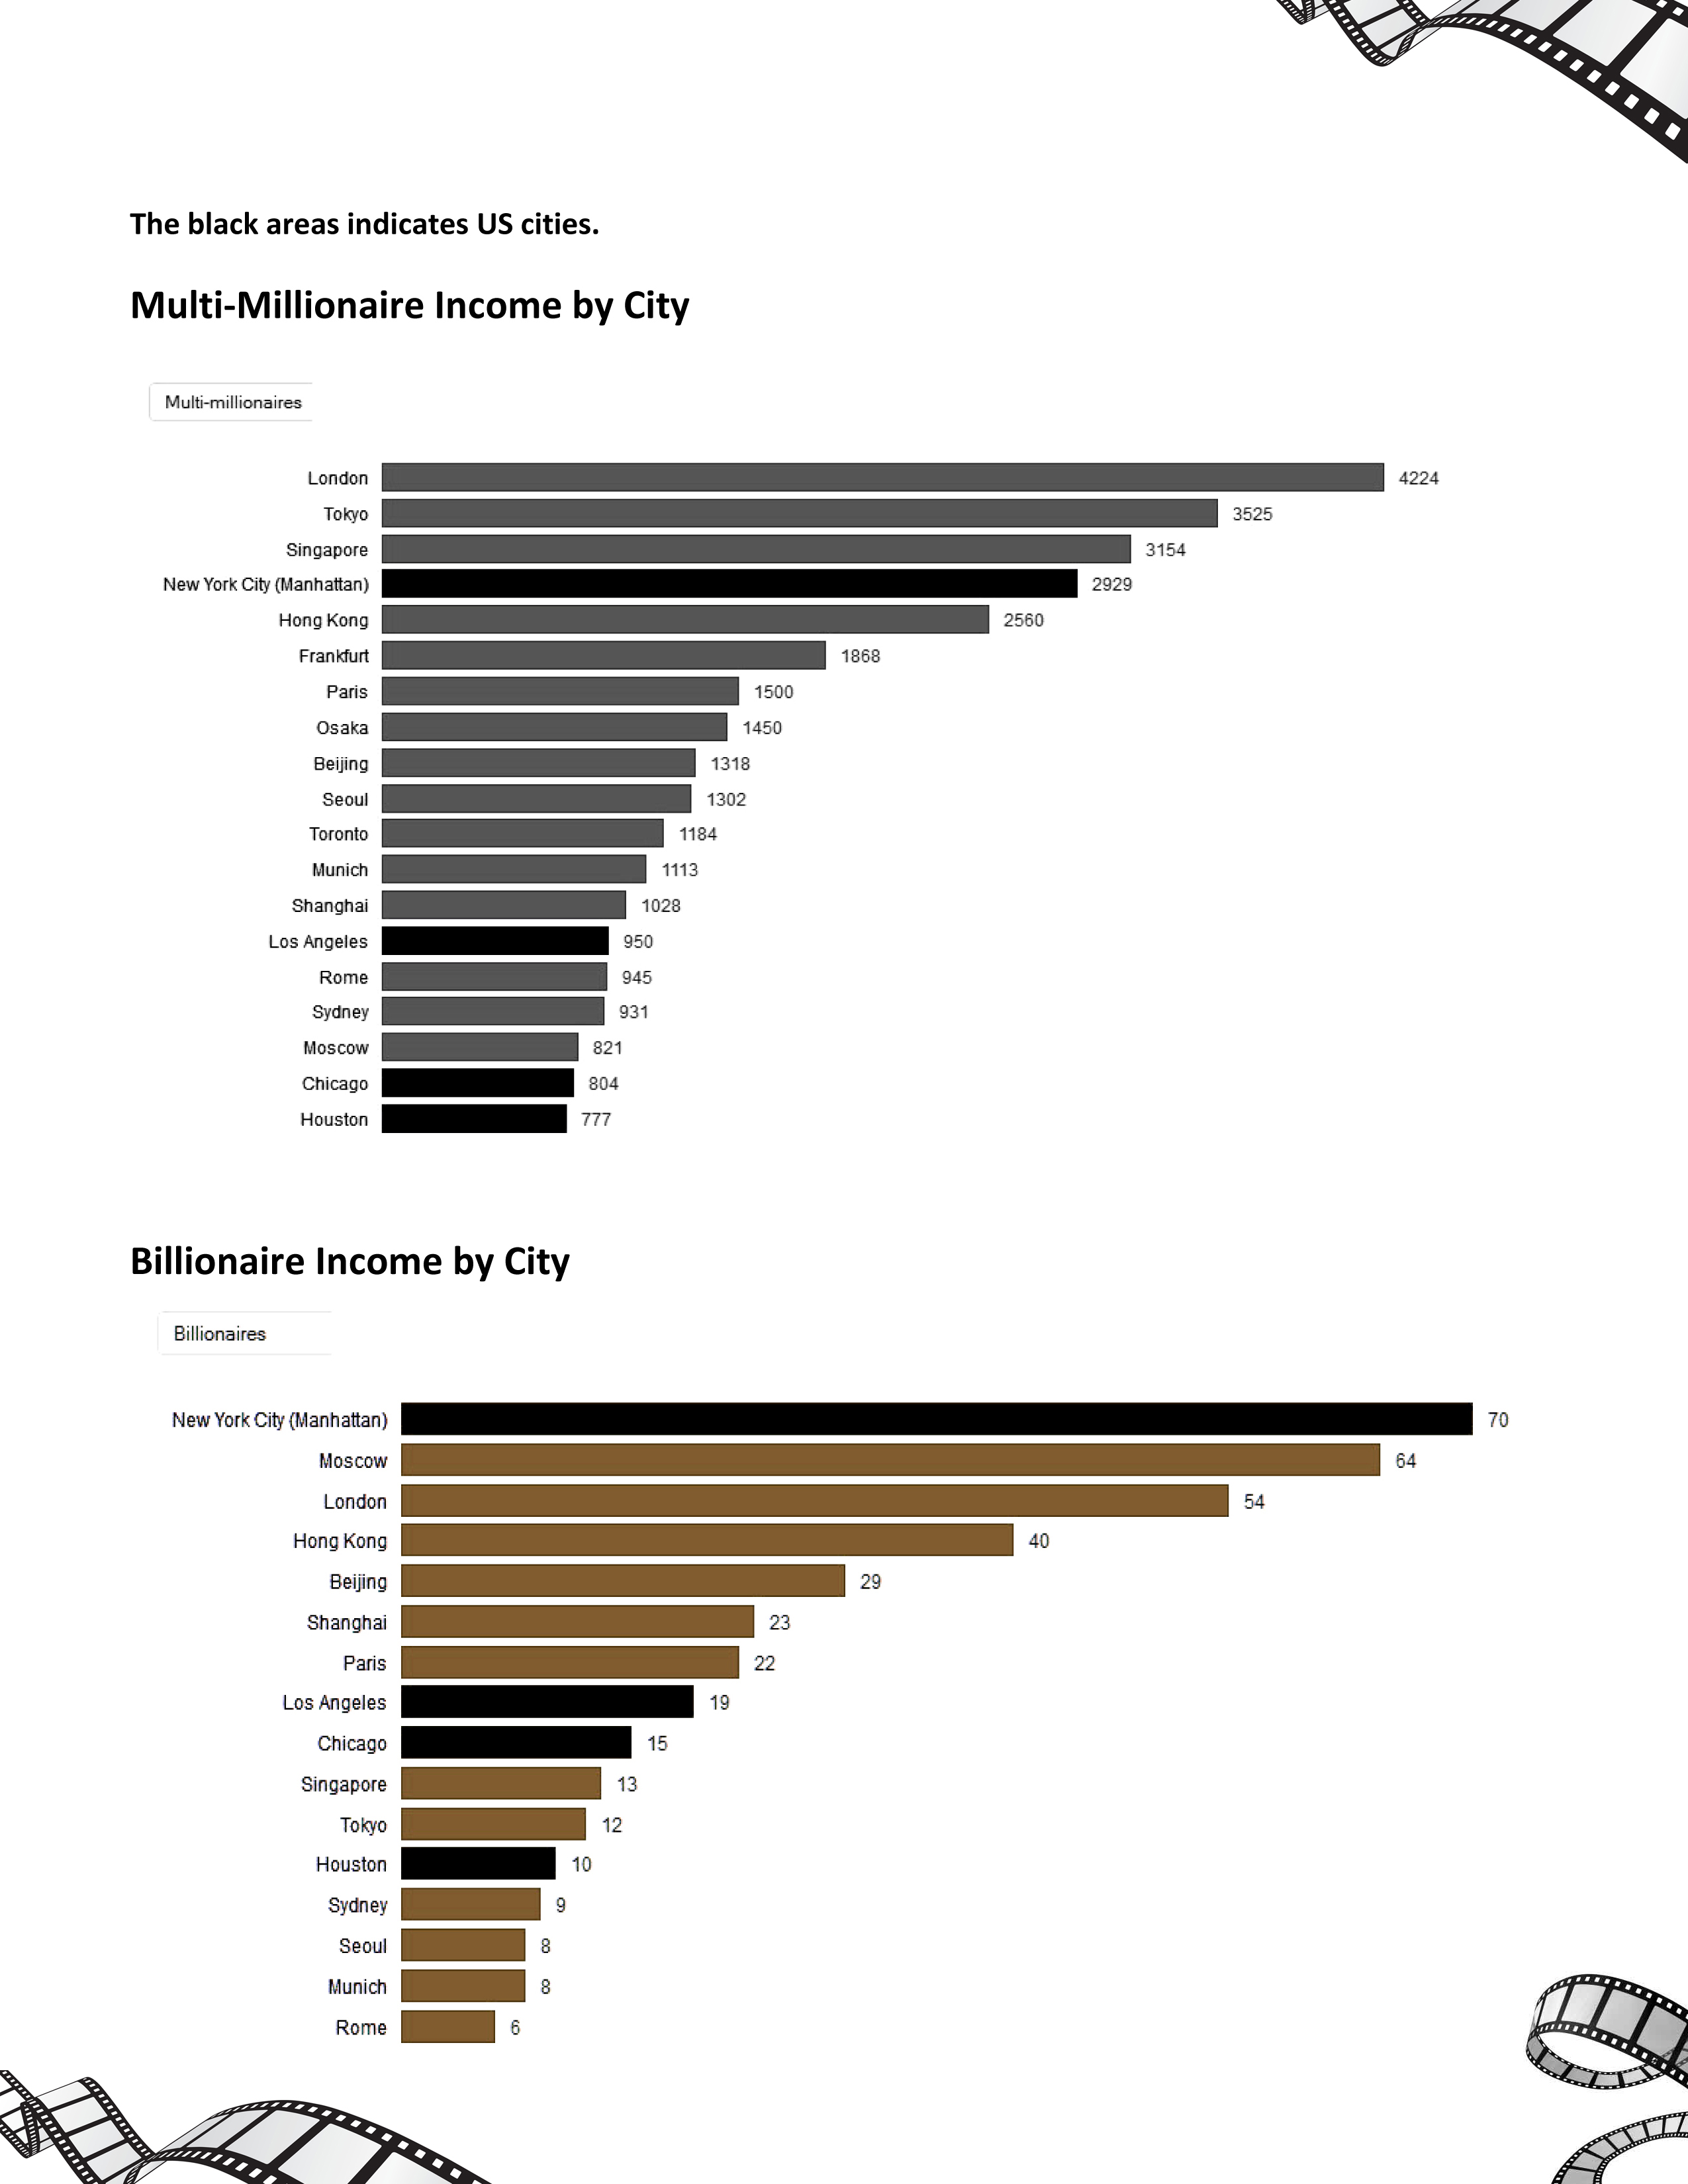 Page-6-View-Of-Luxury-about-Income-Demographics-multi-millionaire-and-billionaire